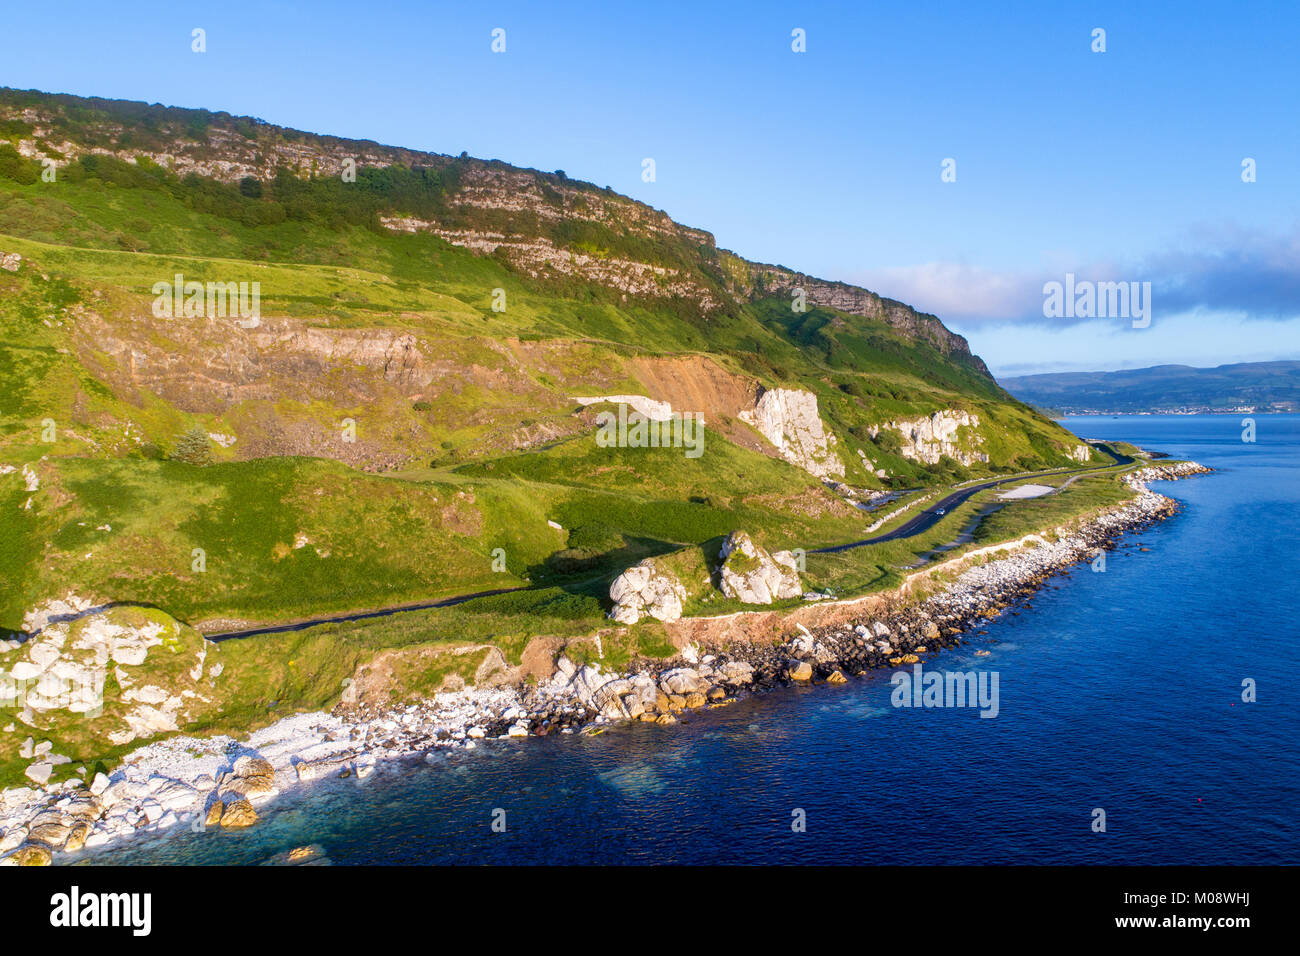 The eastern coast of Northern Ireland and Antrim Coast Road, a.k.a. Giant's Causeway Coastal Route with a cars. - Stock Image